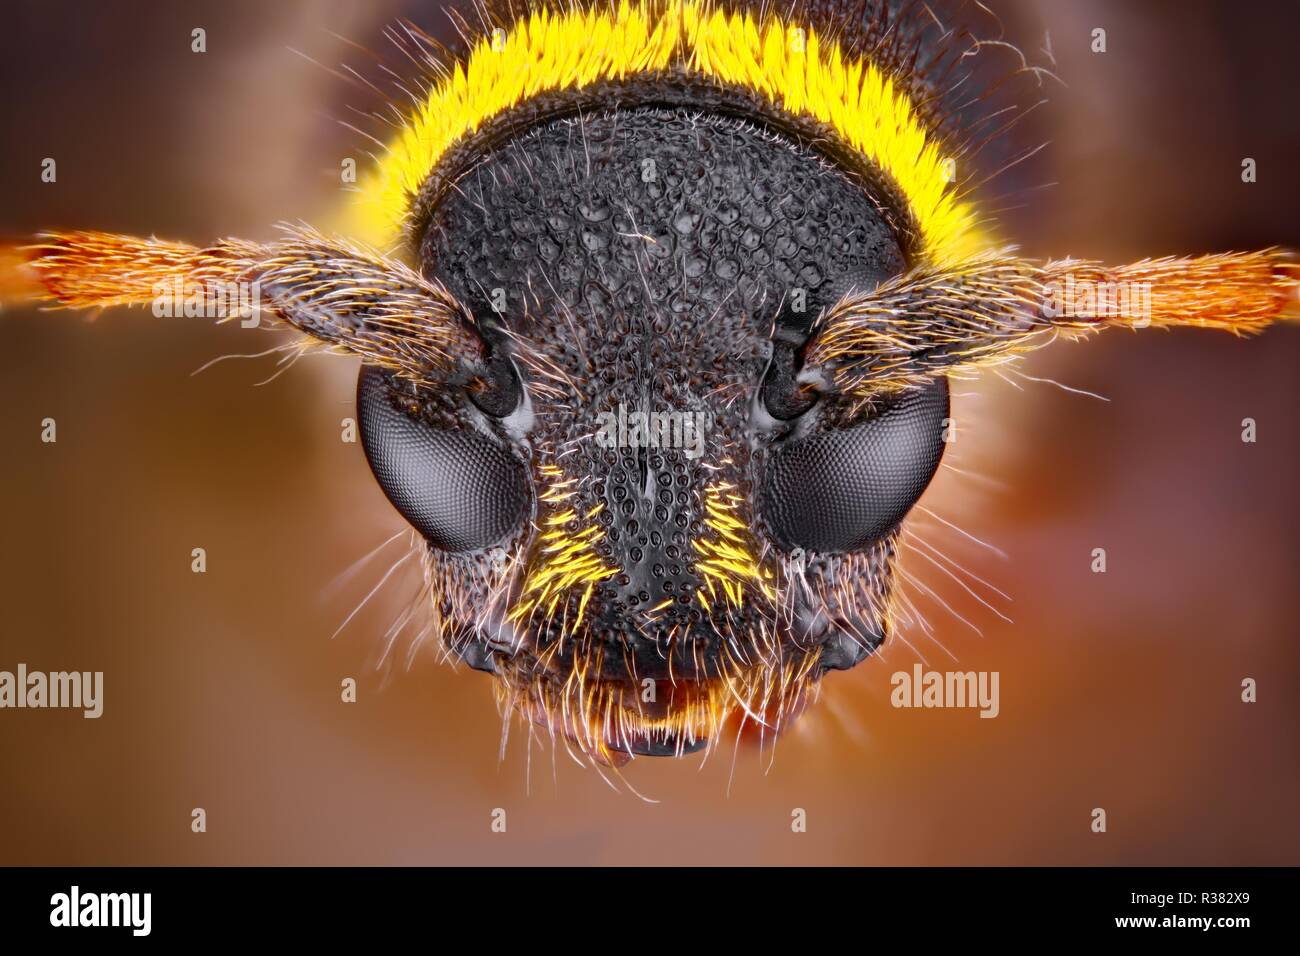 Extremely sharp and detailed study of an insect head taken with a macro lens stacked from many images into one very sharp photo. - Stock Image